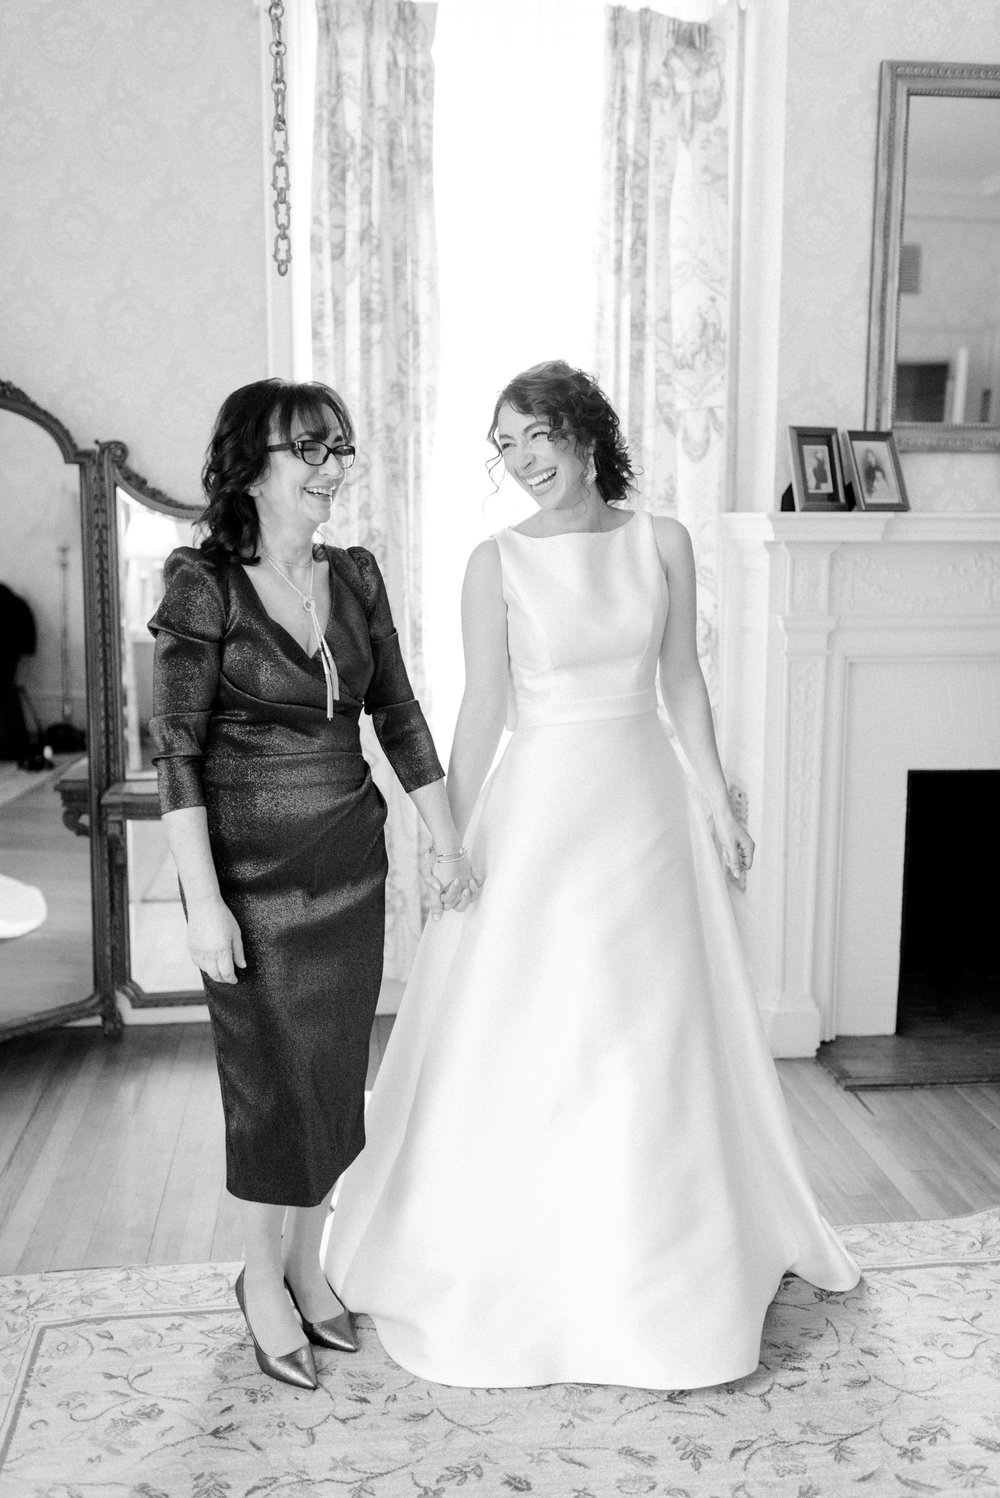 Our lovely bride shares a laugh with her mother, just moments before her romantic and classic wedding day for their french inspired green and white Cairnwood Estate wedding